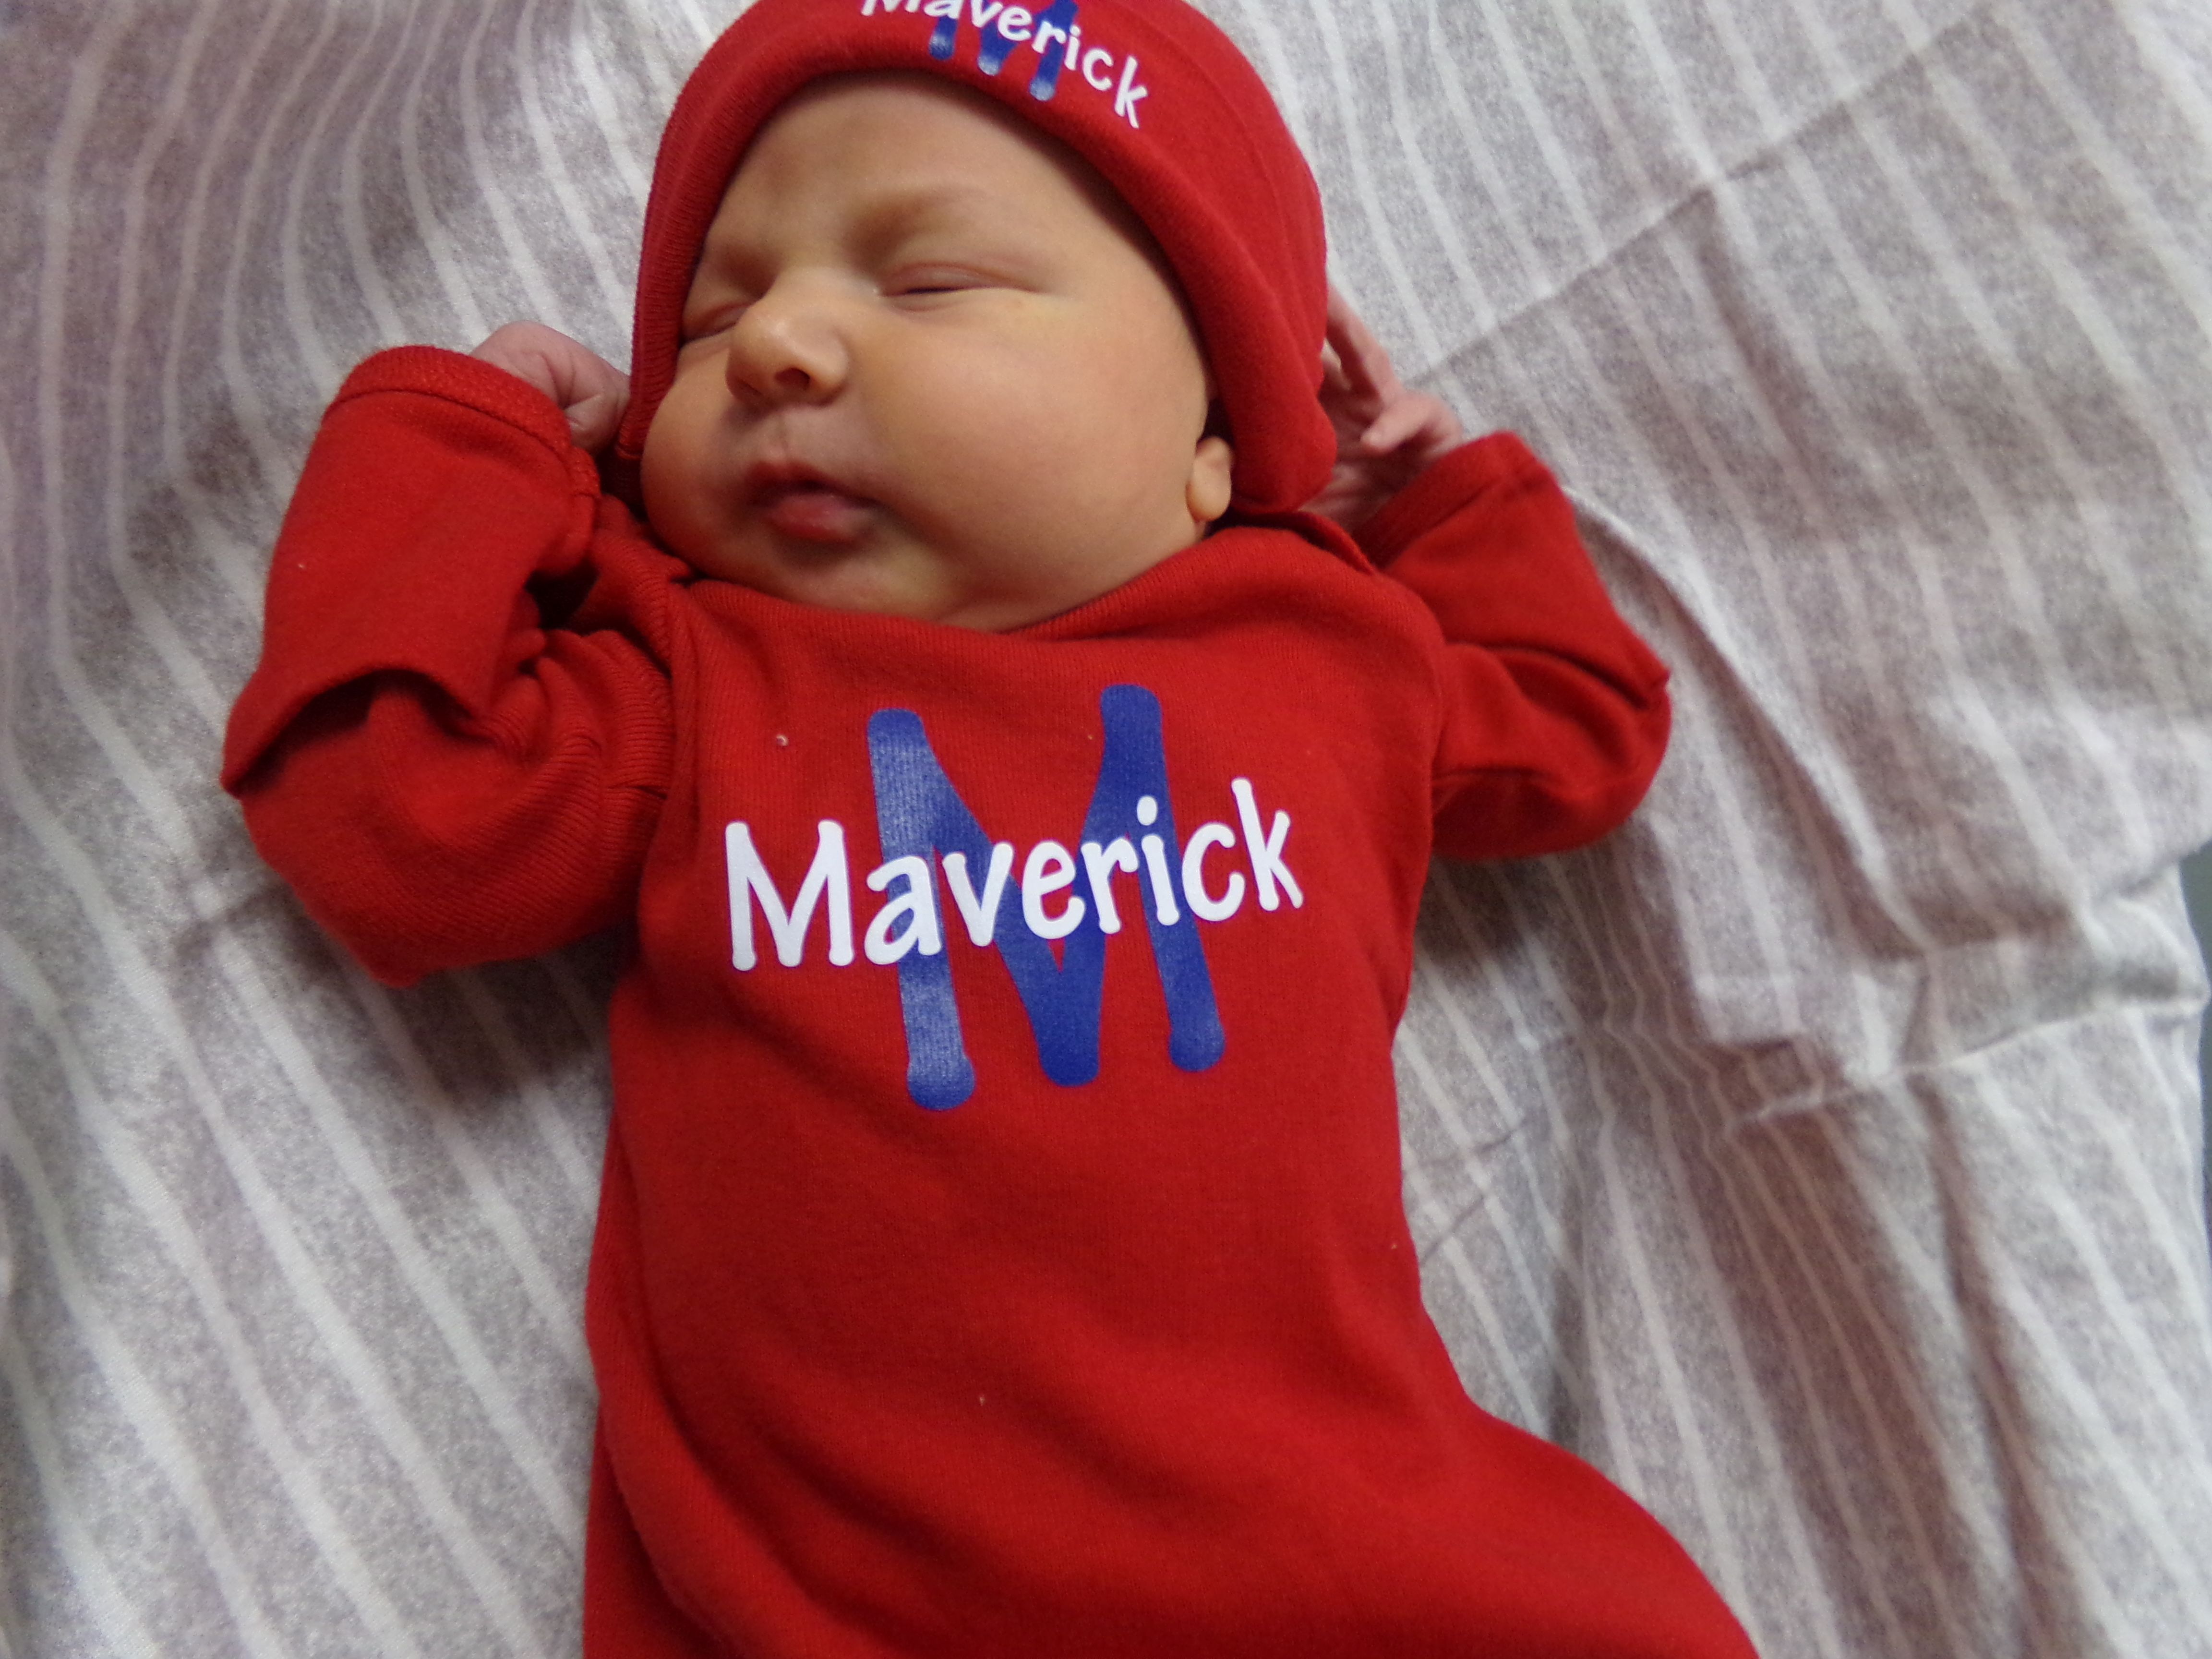 Maverick William-Boy